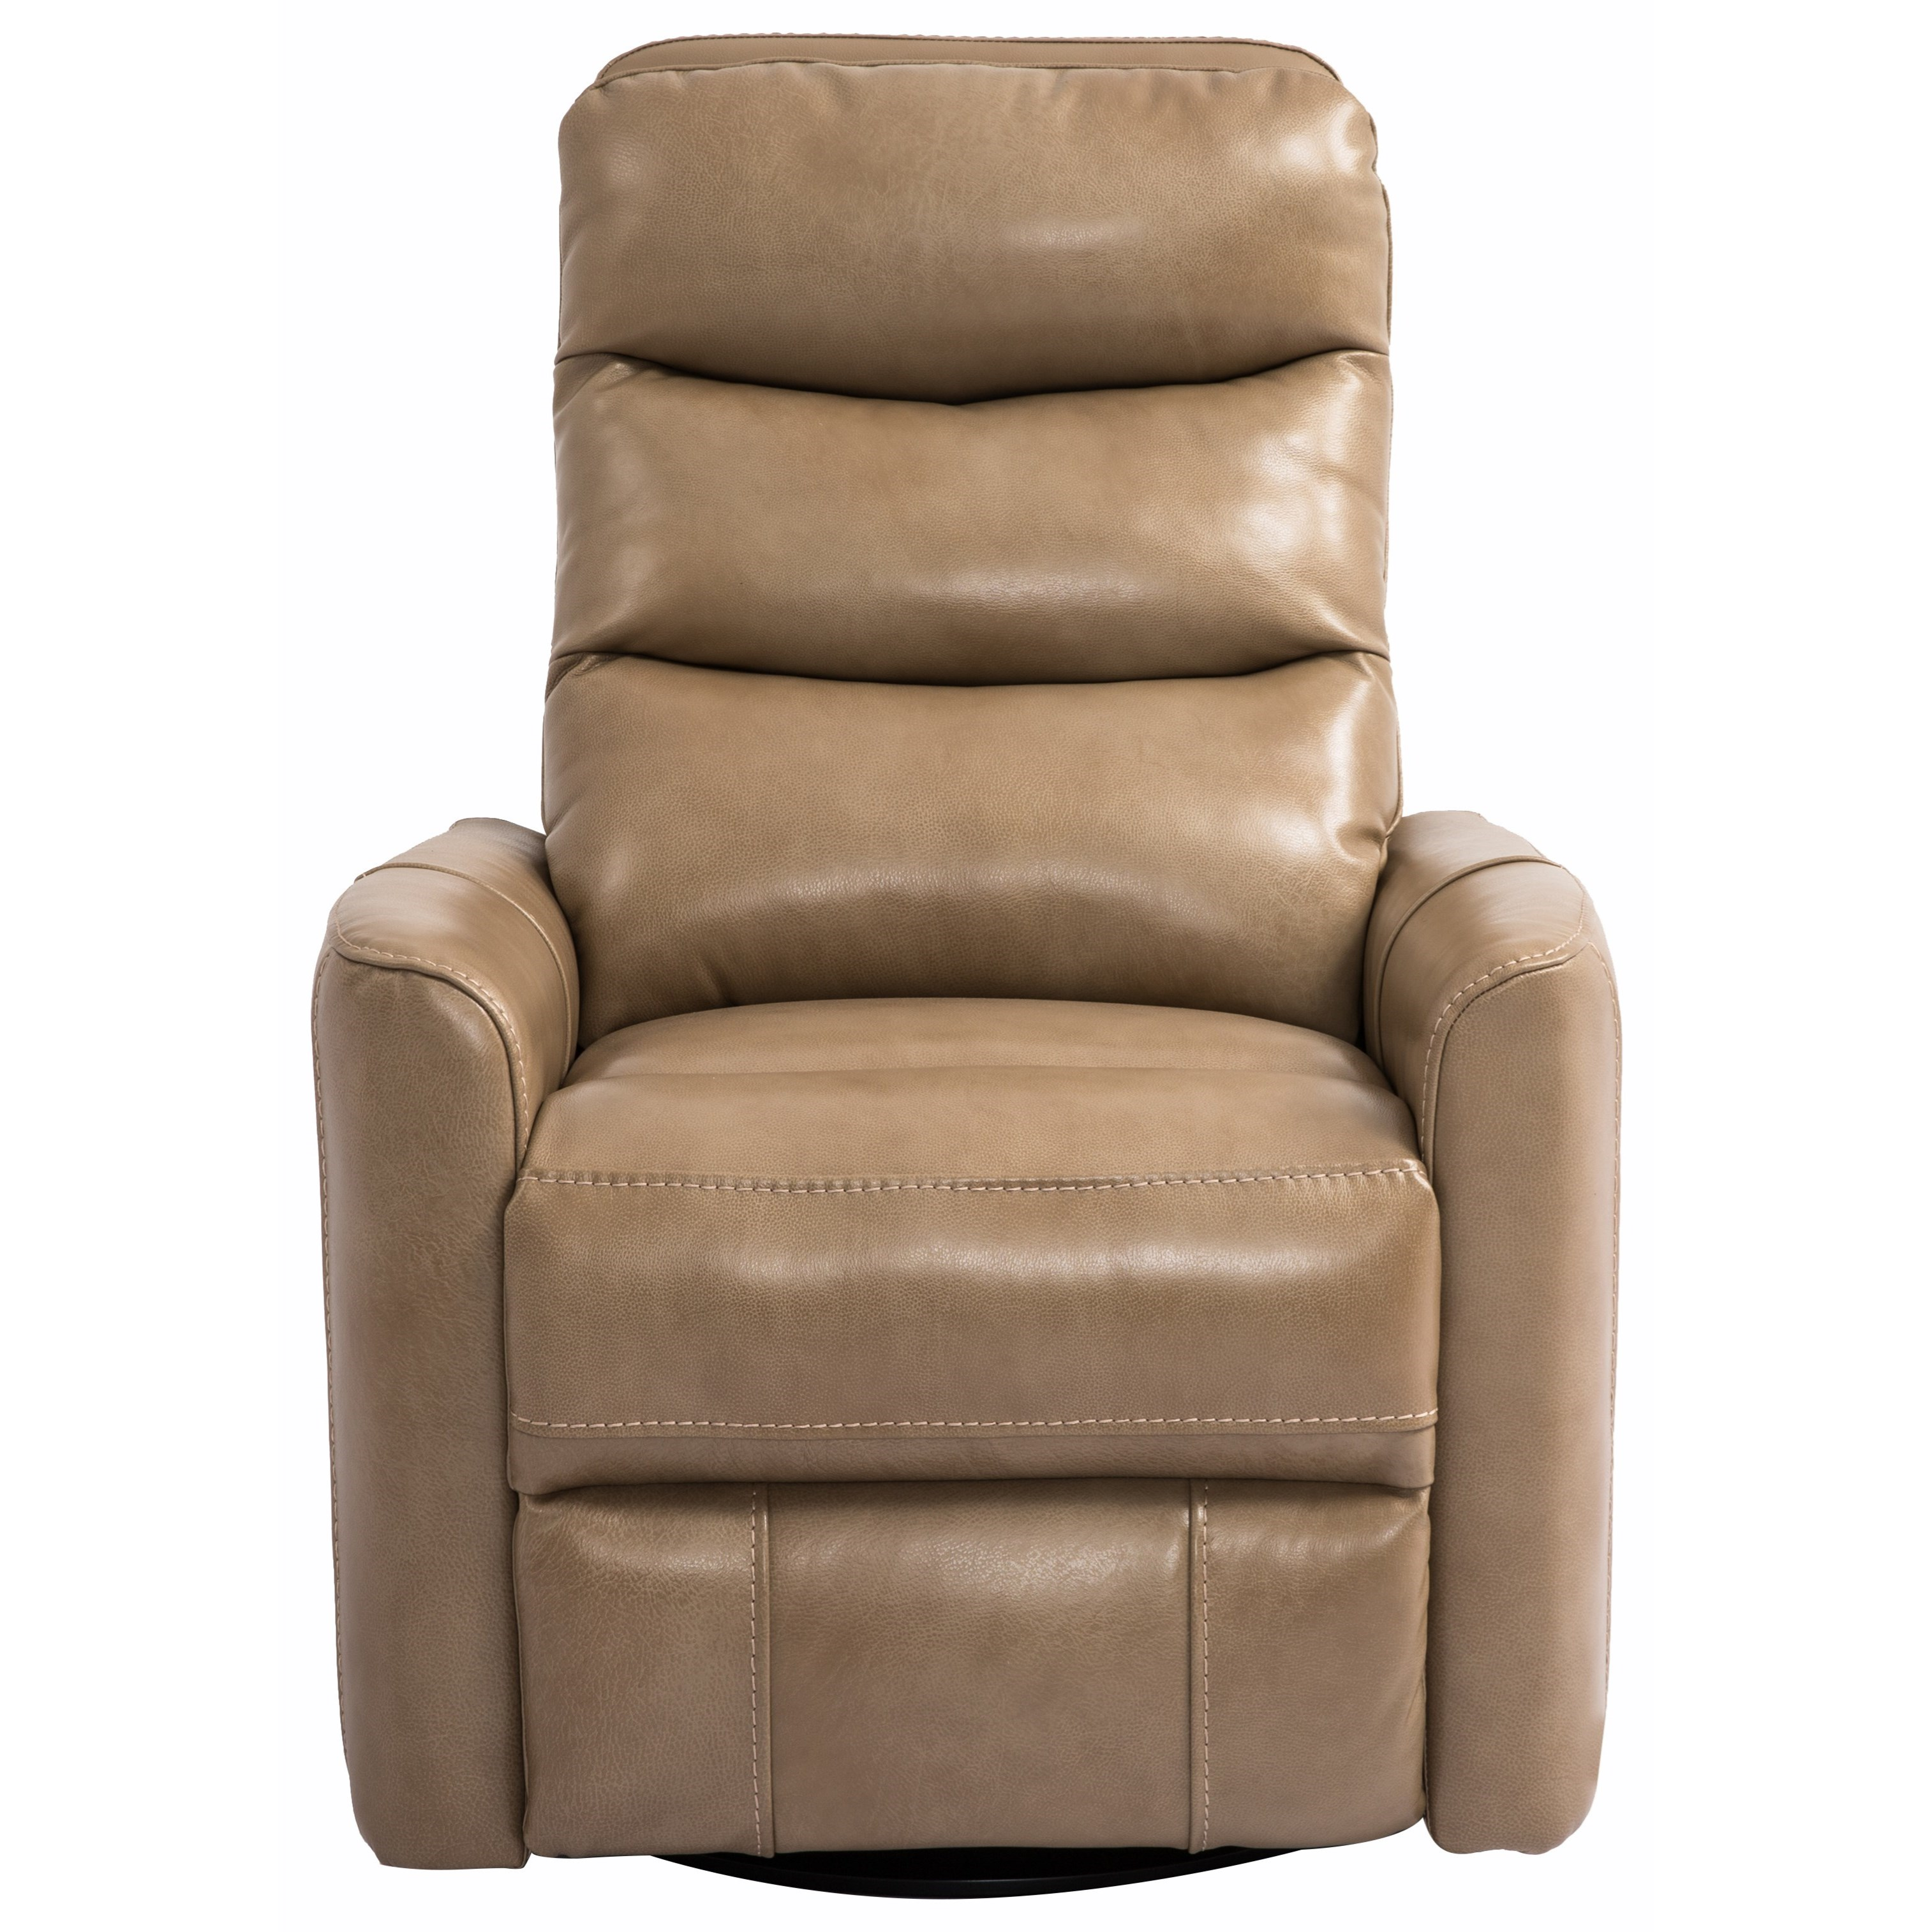 883 Swivel Glider Recliner by Cheers at Household Furniture